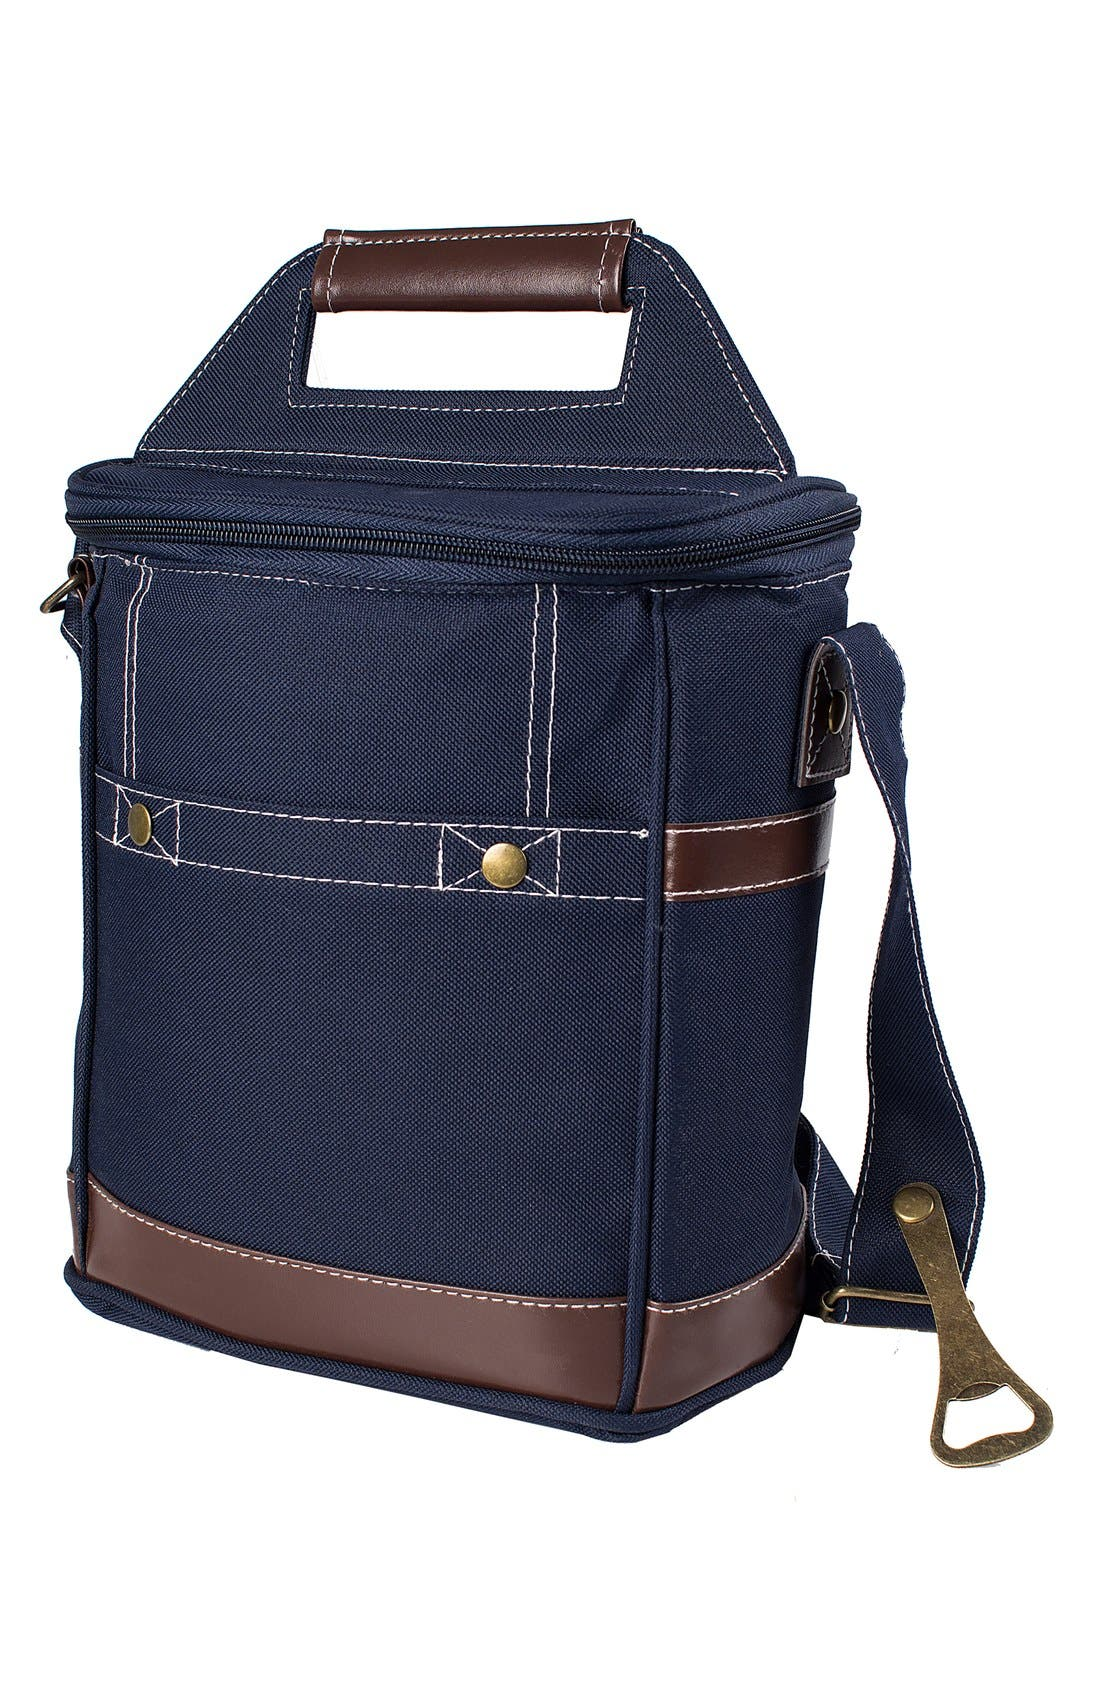 Monogram Six-Bottle Beer Cooler,                             Main thumbnail 1, color,                             Navy - Blank